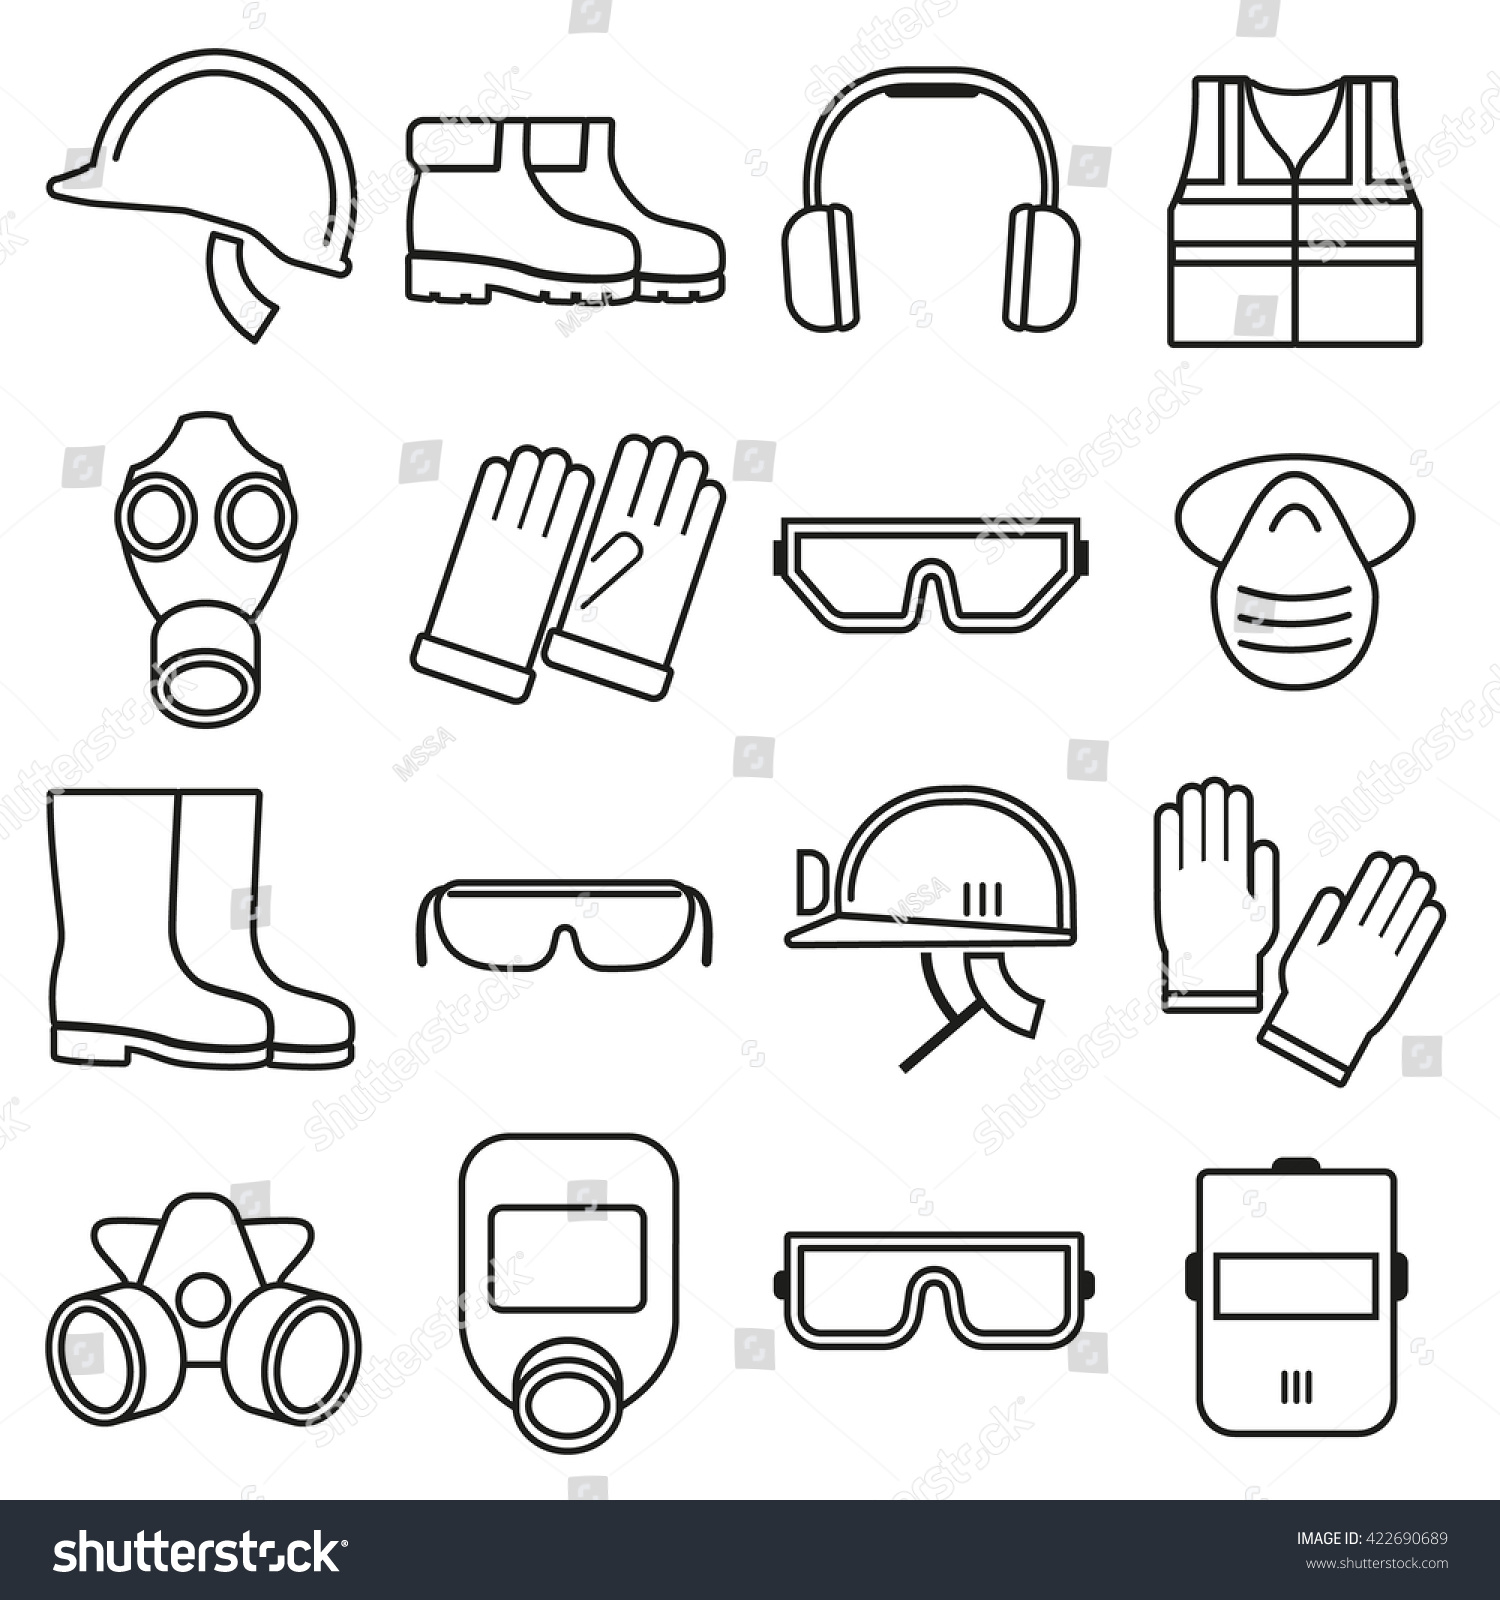 linear job safety equipment icons set stock vector 422690689 linear job safety equipment icons set helmet industry vector illustration